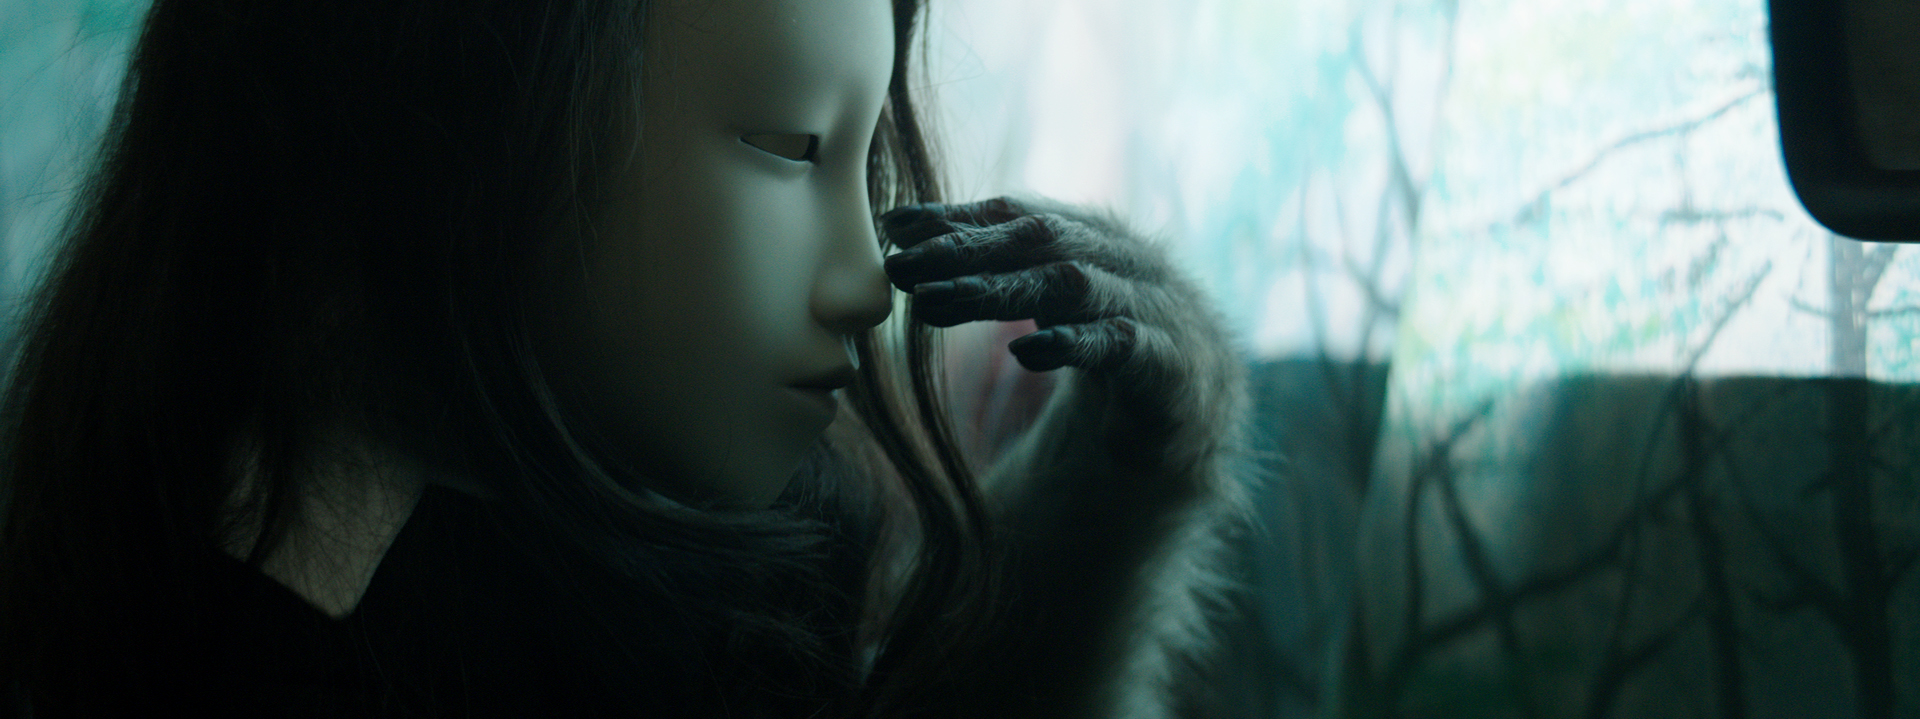 Pierre Huyghe, Untitled (Human Mask), 2014 Pinault Collection © Pierre Huyghe, Courtesy the artist; Marian Goodman Gallery, New York; Hauser & Wirth, London; Esther Schipper, Berlin; Anna Lena Films, Paris.